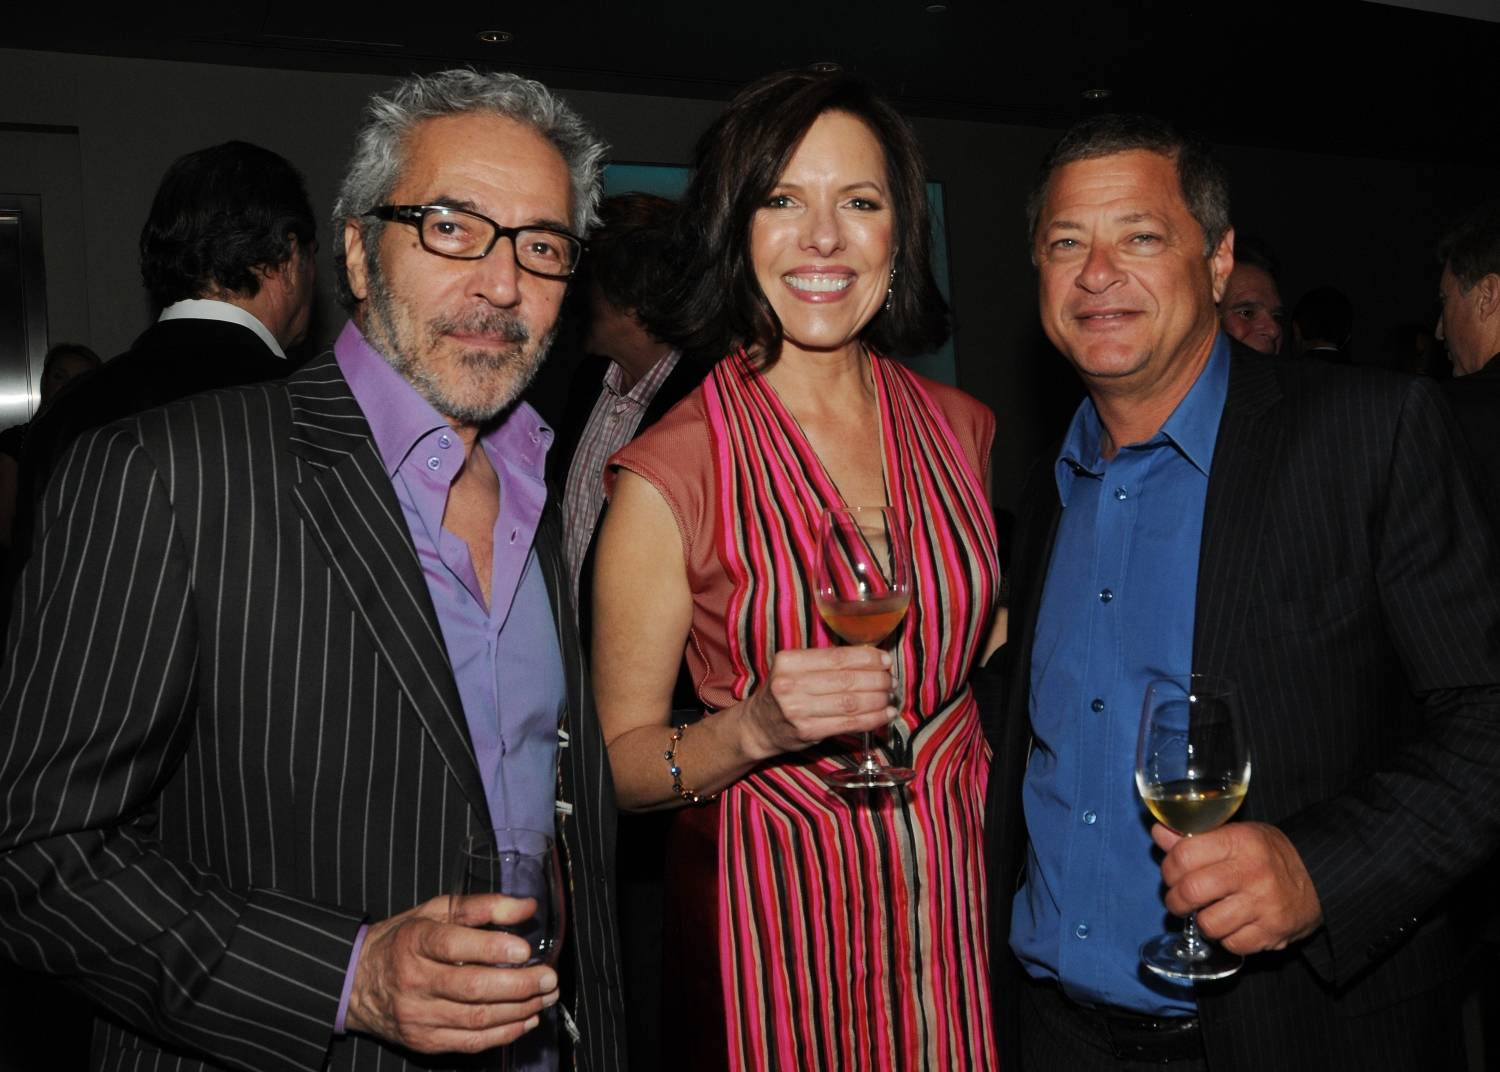 Arthur Sarkissian (producer of RUSH HOUR), Ann Colgin (planning committee member and vintner of Colgin Cellars), Michael Rotenberg (TV and film producer)